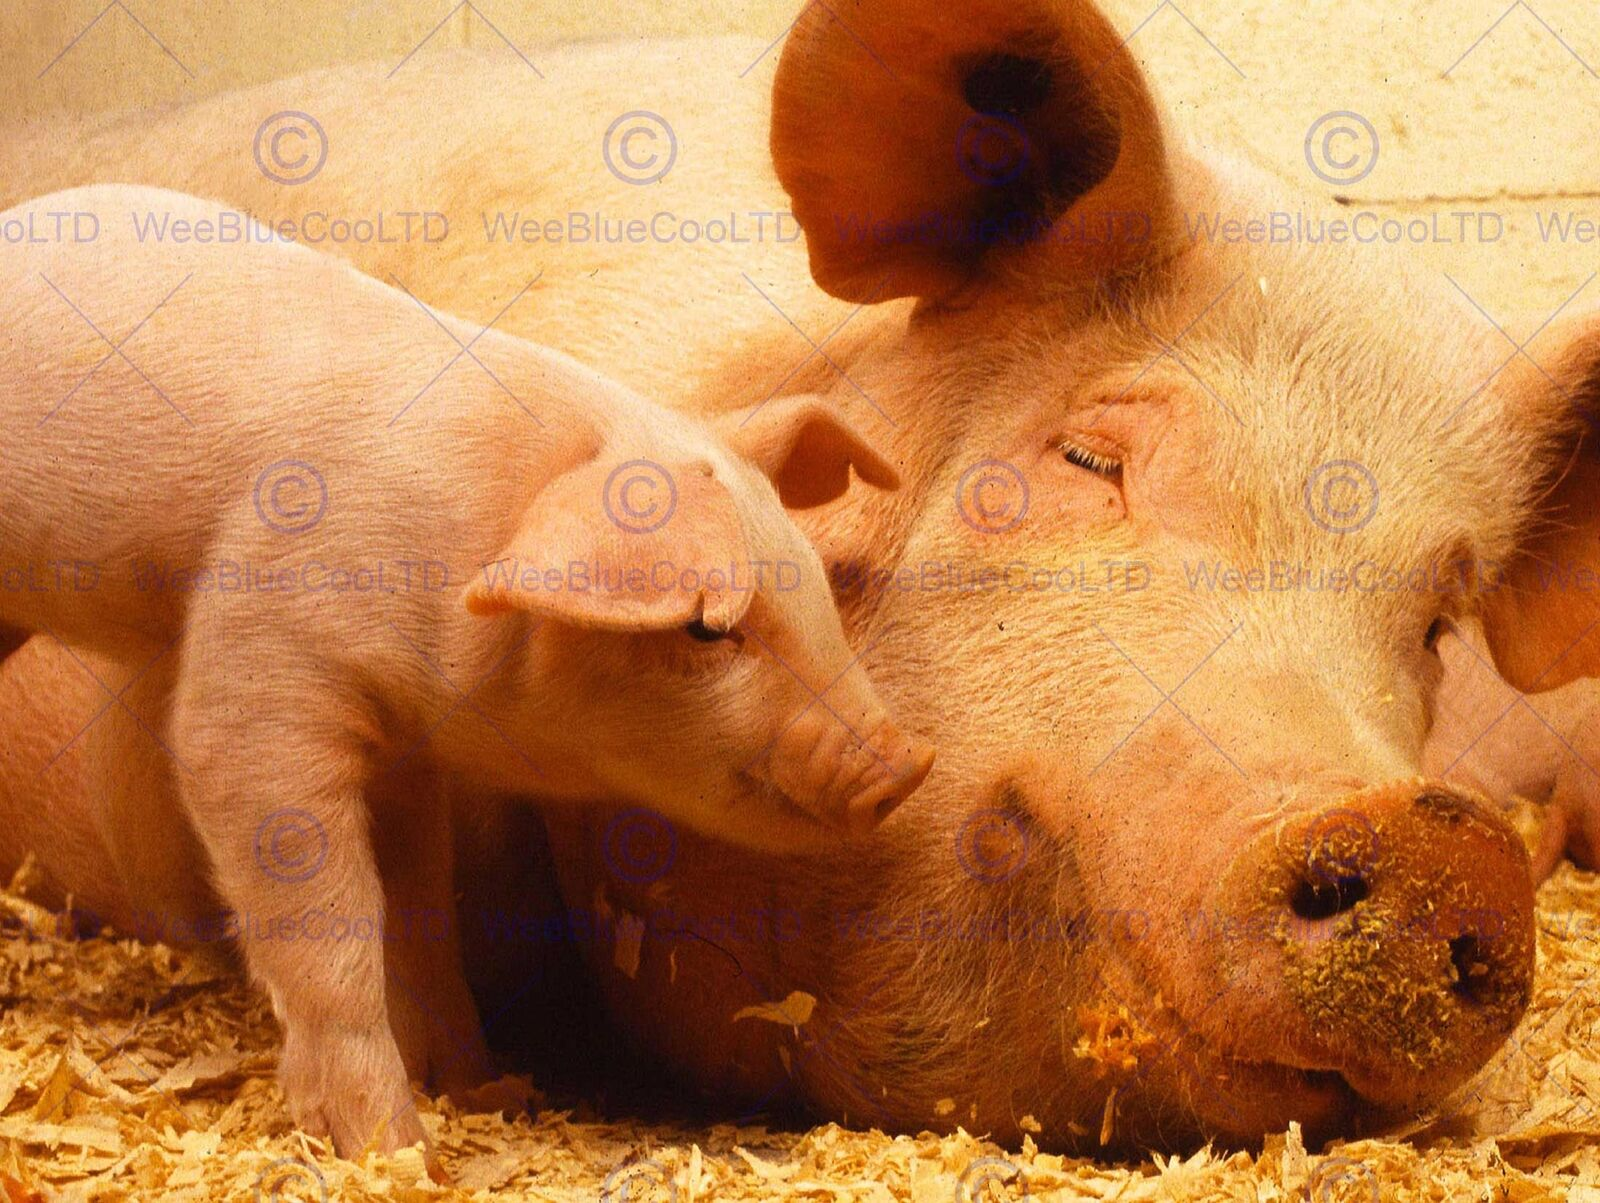 PHOTO ANIMAL PIG PIGLET CUTE FARM PINK BABY BABE ART PRINT POSTER MP3612B